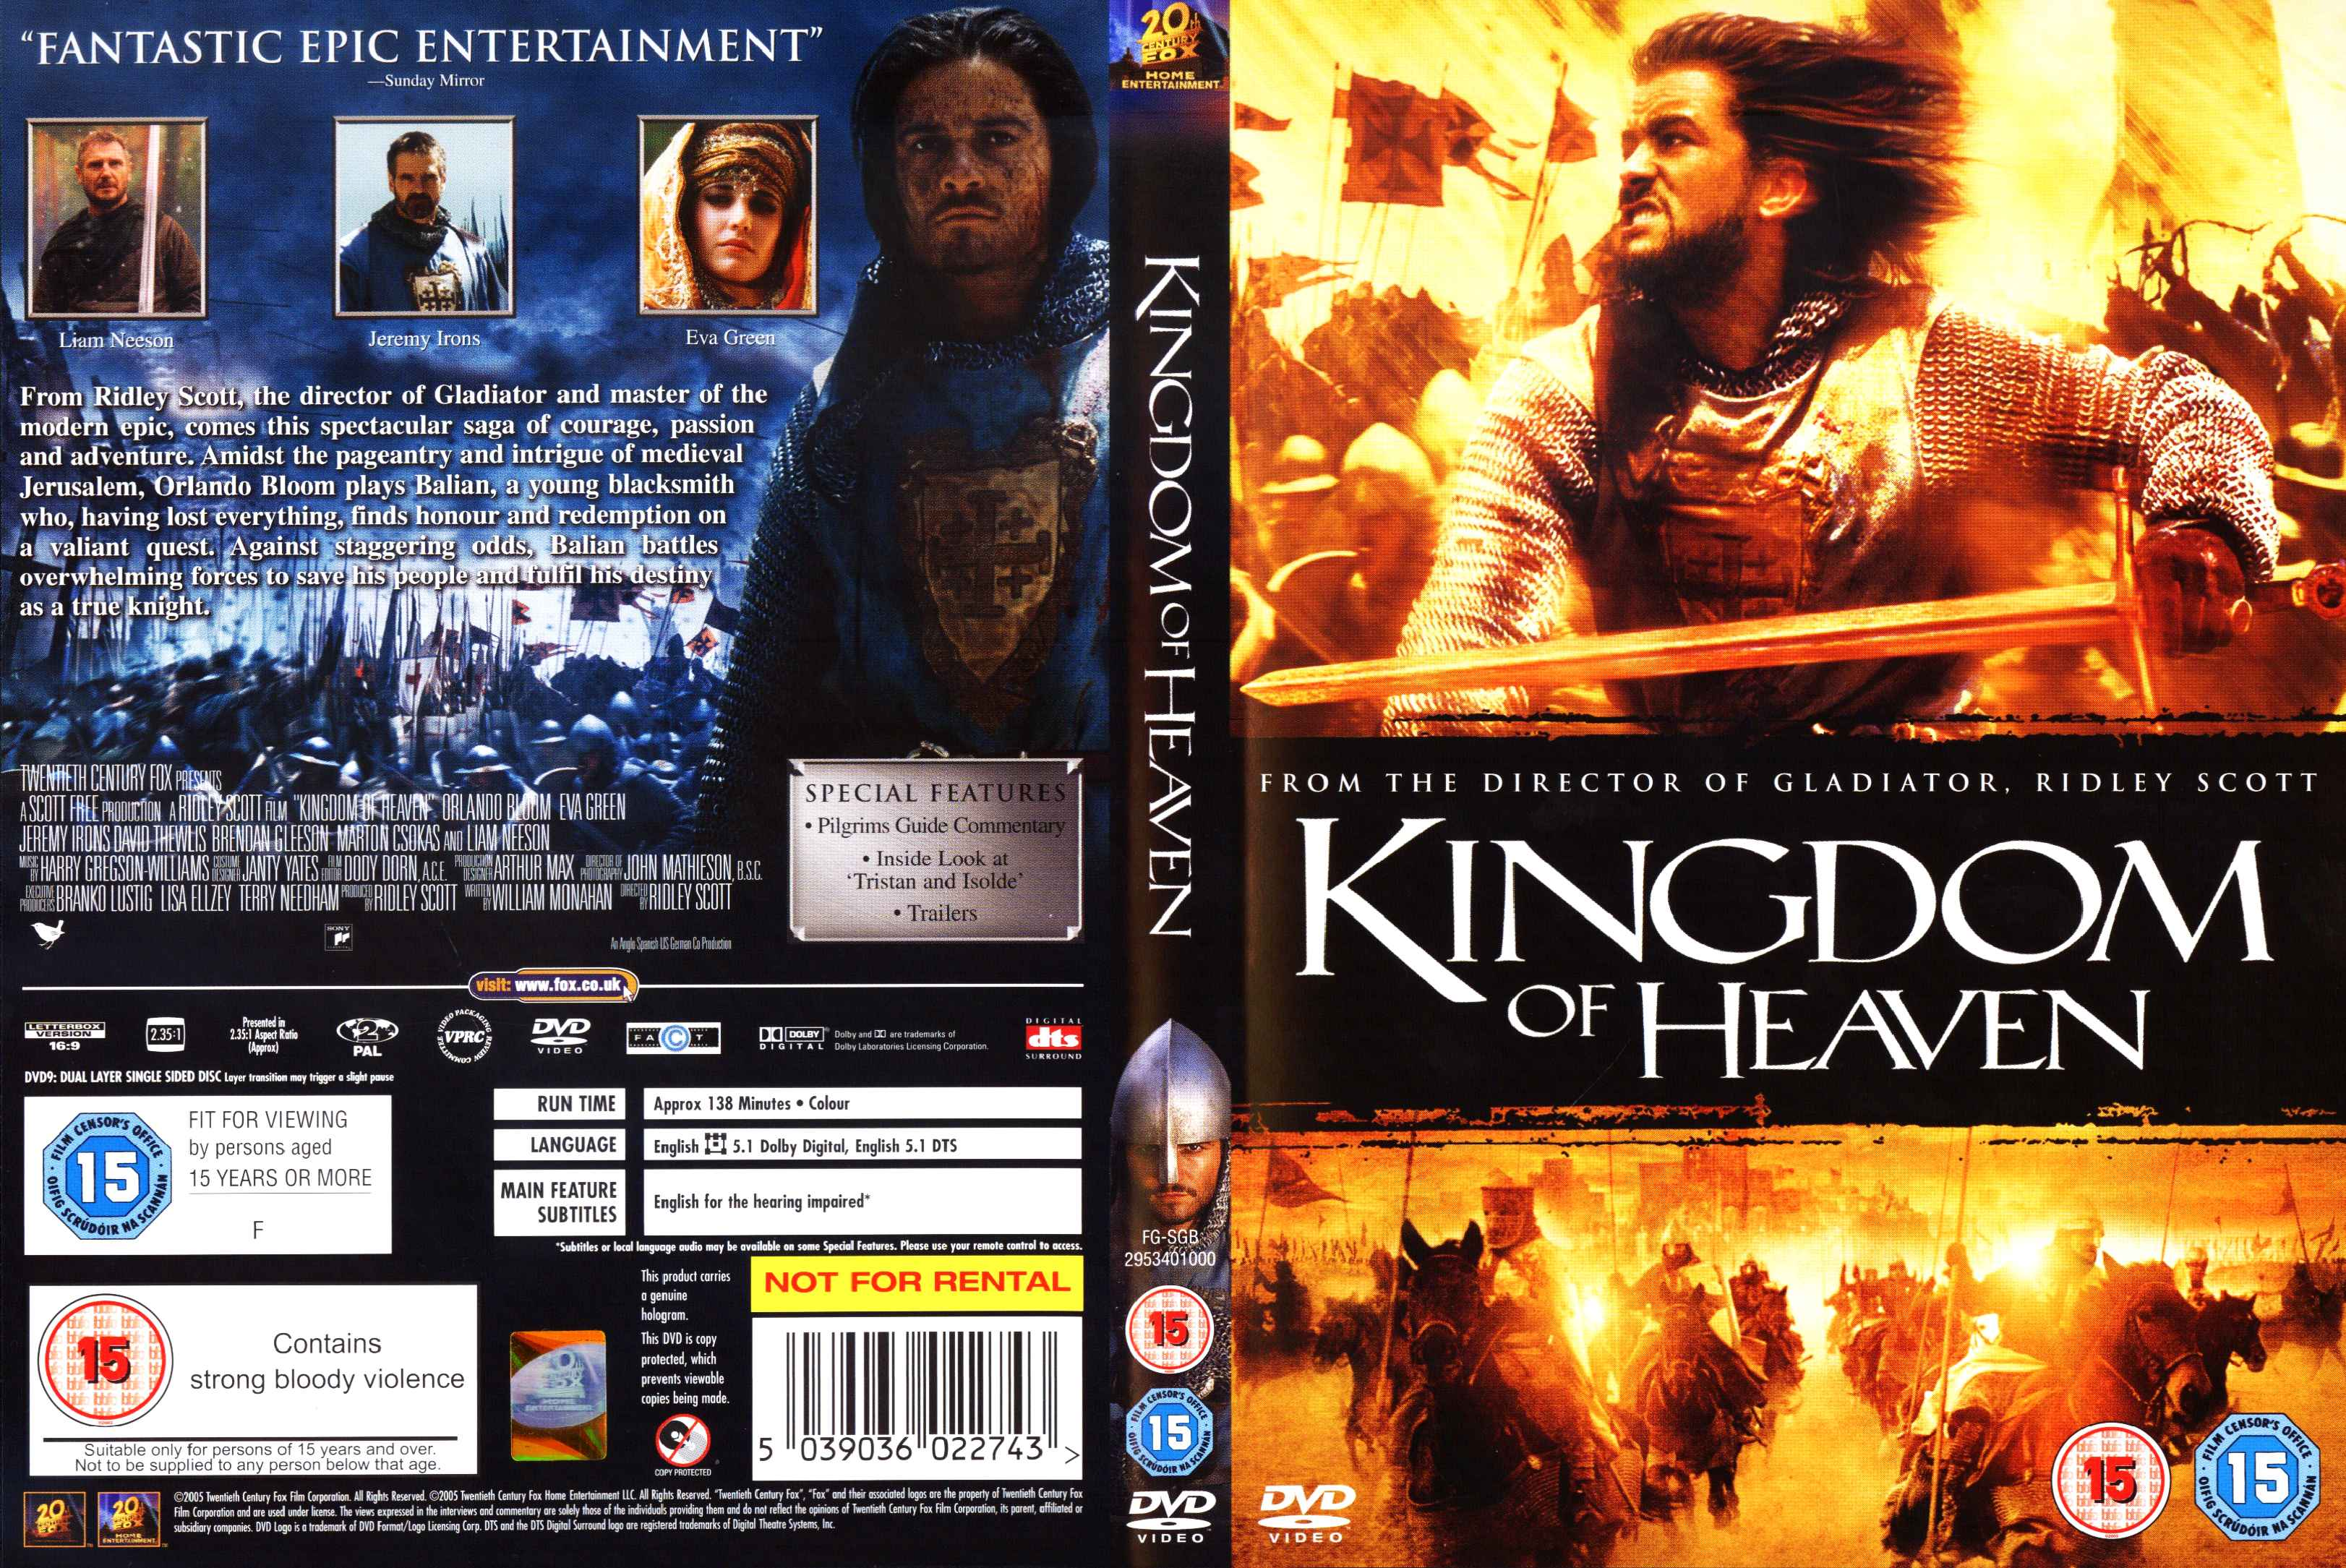 This is an image of Enterprising Kingdom of Heaven Dvd Label